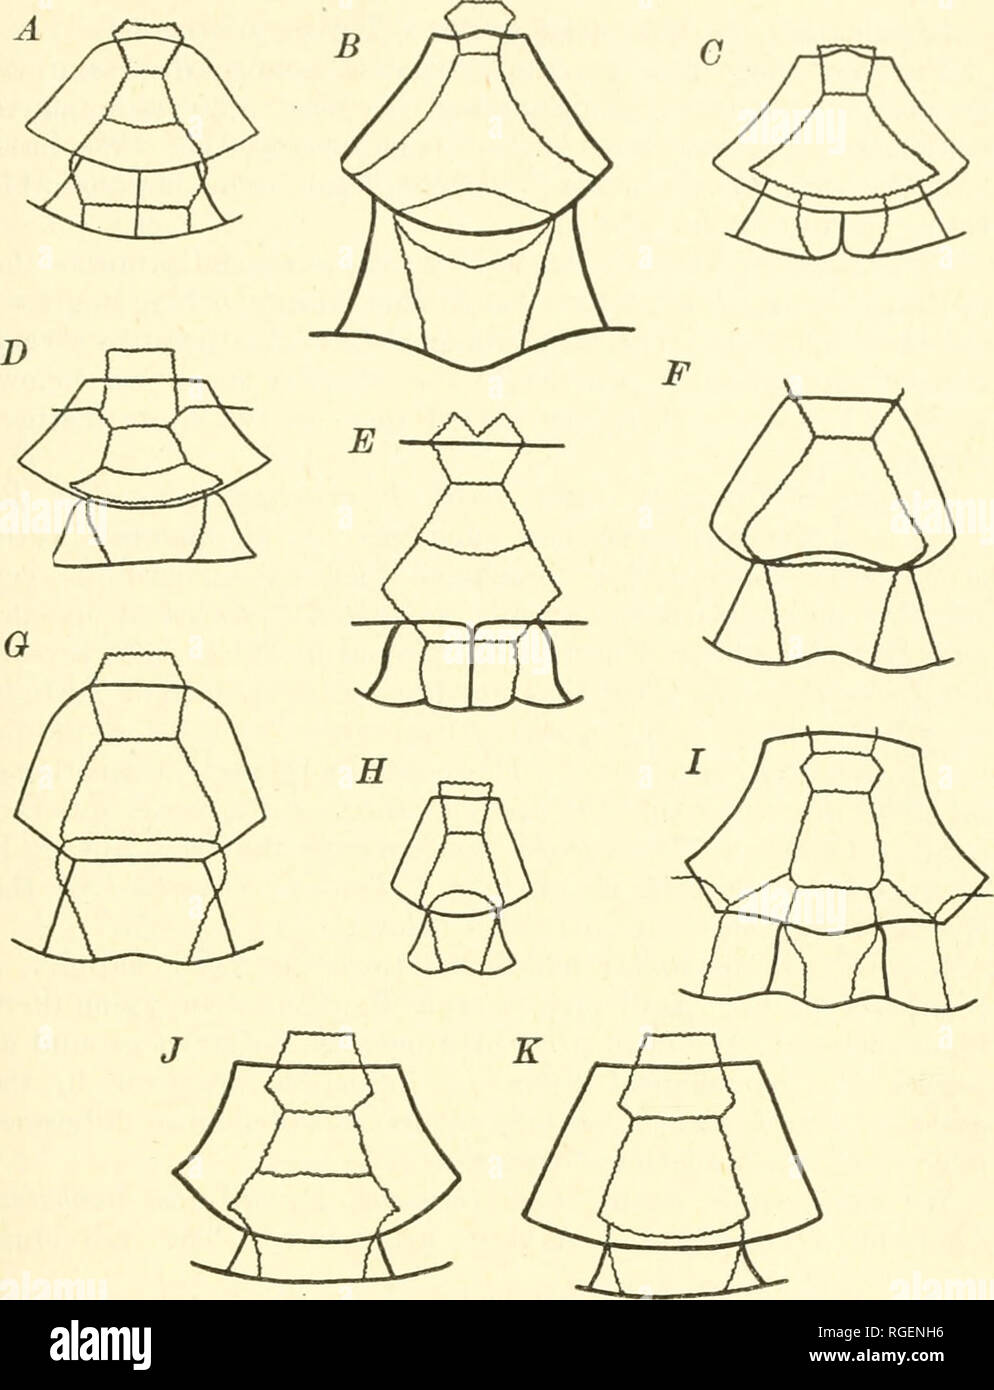 . Bulletin of the Museum of Comparative Zoology at Harvard College. Zoology. LOVEBIDGE AND WILLIAMS: AFRICAN CRYPTODIRA 217. Fig. 12. Pygal patterns in testudinids (diagrammatic). A, Clemmys caspica leprosa (Pygal pattern differs within the genus Clemmys as cur- rently recognized) ; B, Geochelone pardalis babcocki; C, Emys orbicularis; D, Testudo graeca graeca; E, Malacochersus tornieri; F, Psammobates ten- torius tentorius; G, Chersina angulata; H. Uomopiis signatus; I, Kinixys erosa; J, Aeinixys planicauOa; K, Pyxis arachnoides. (P. Washer del.). Please note that these images are extracted f - Stock Image